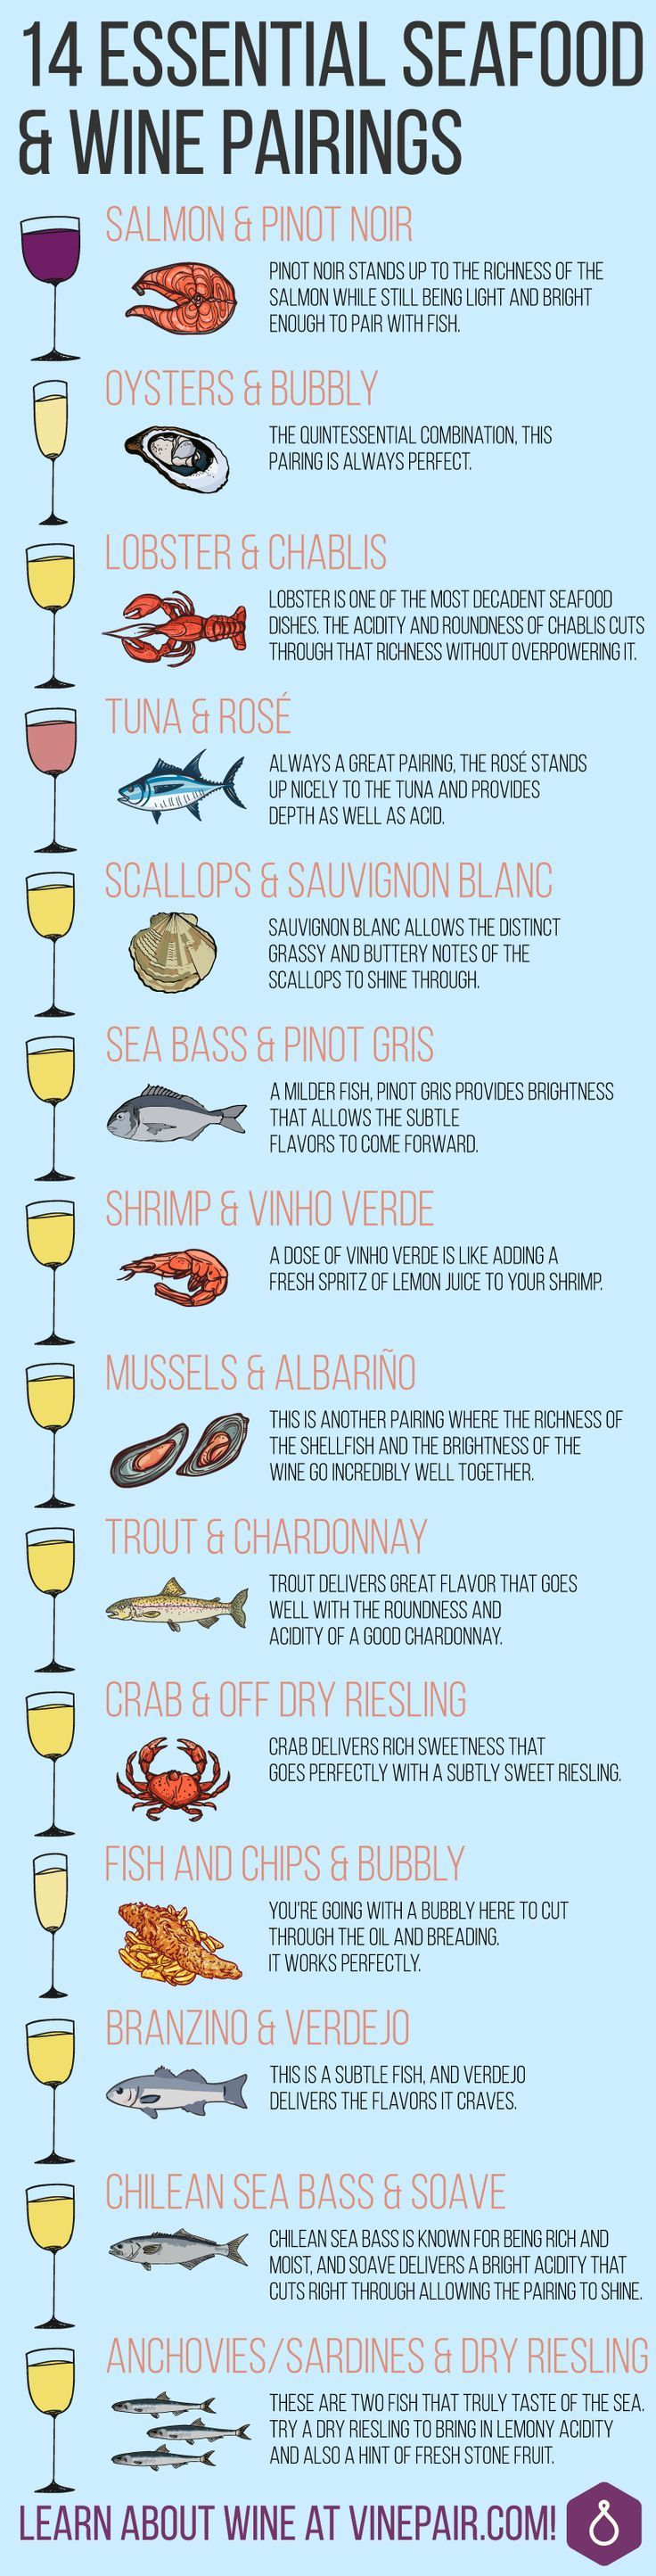 Wine with Fish: 14 Wine and Seafood Pairings Food Infographic